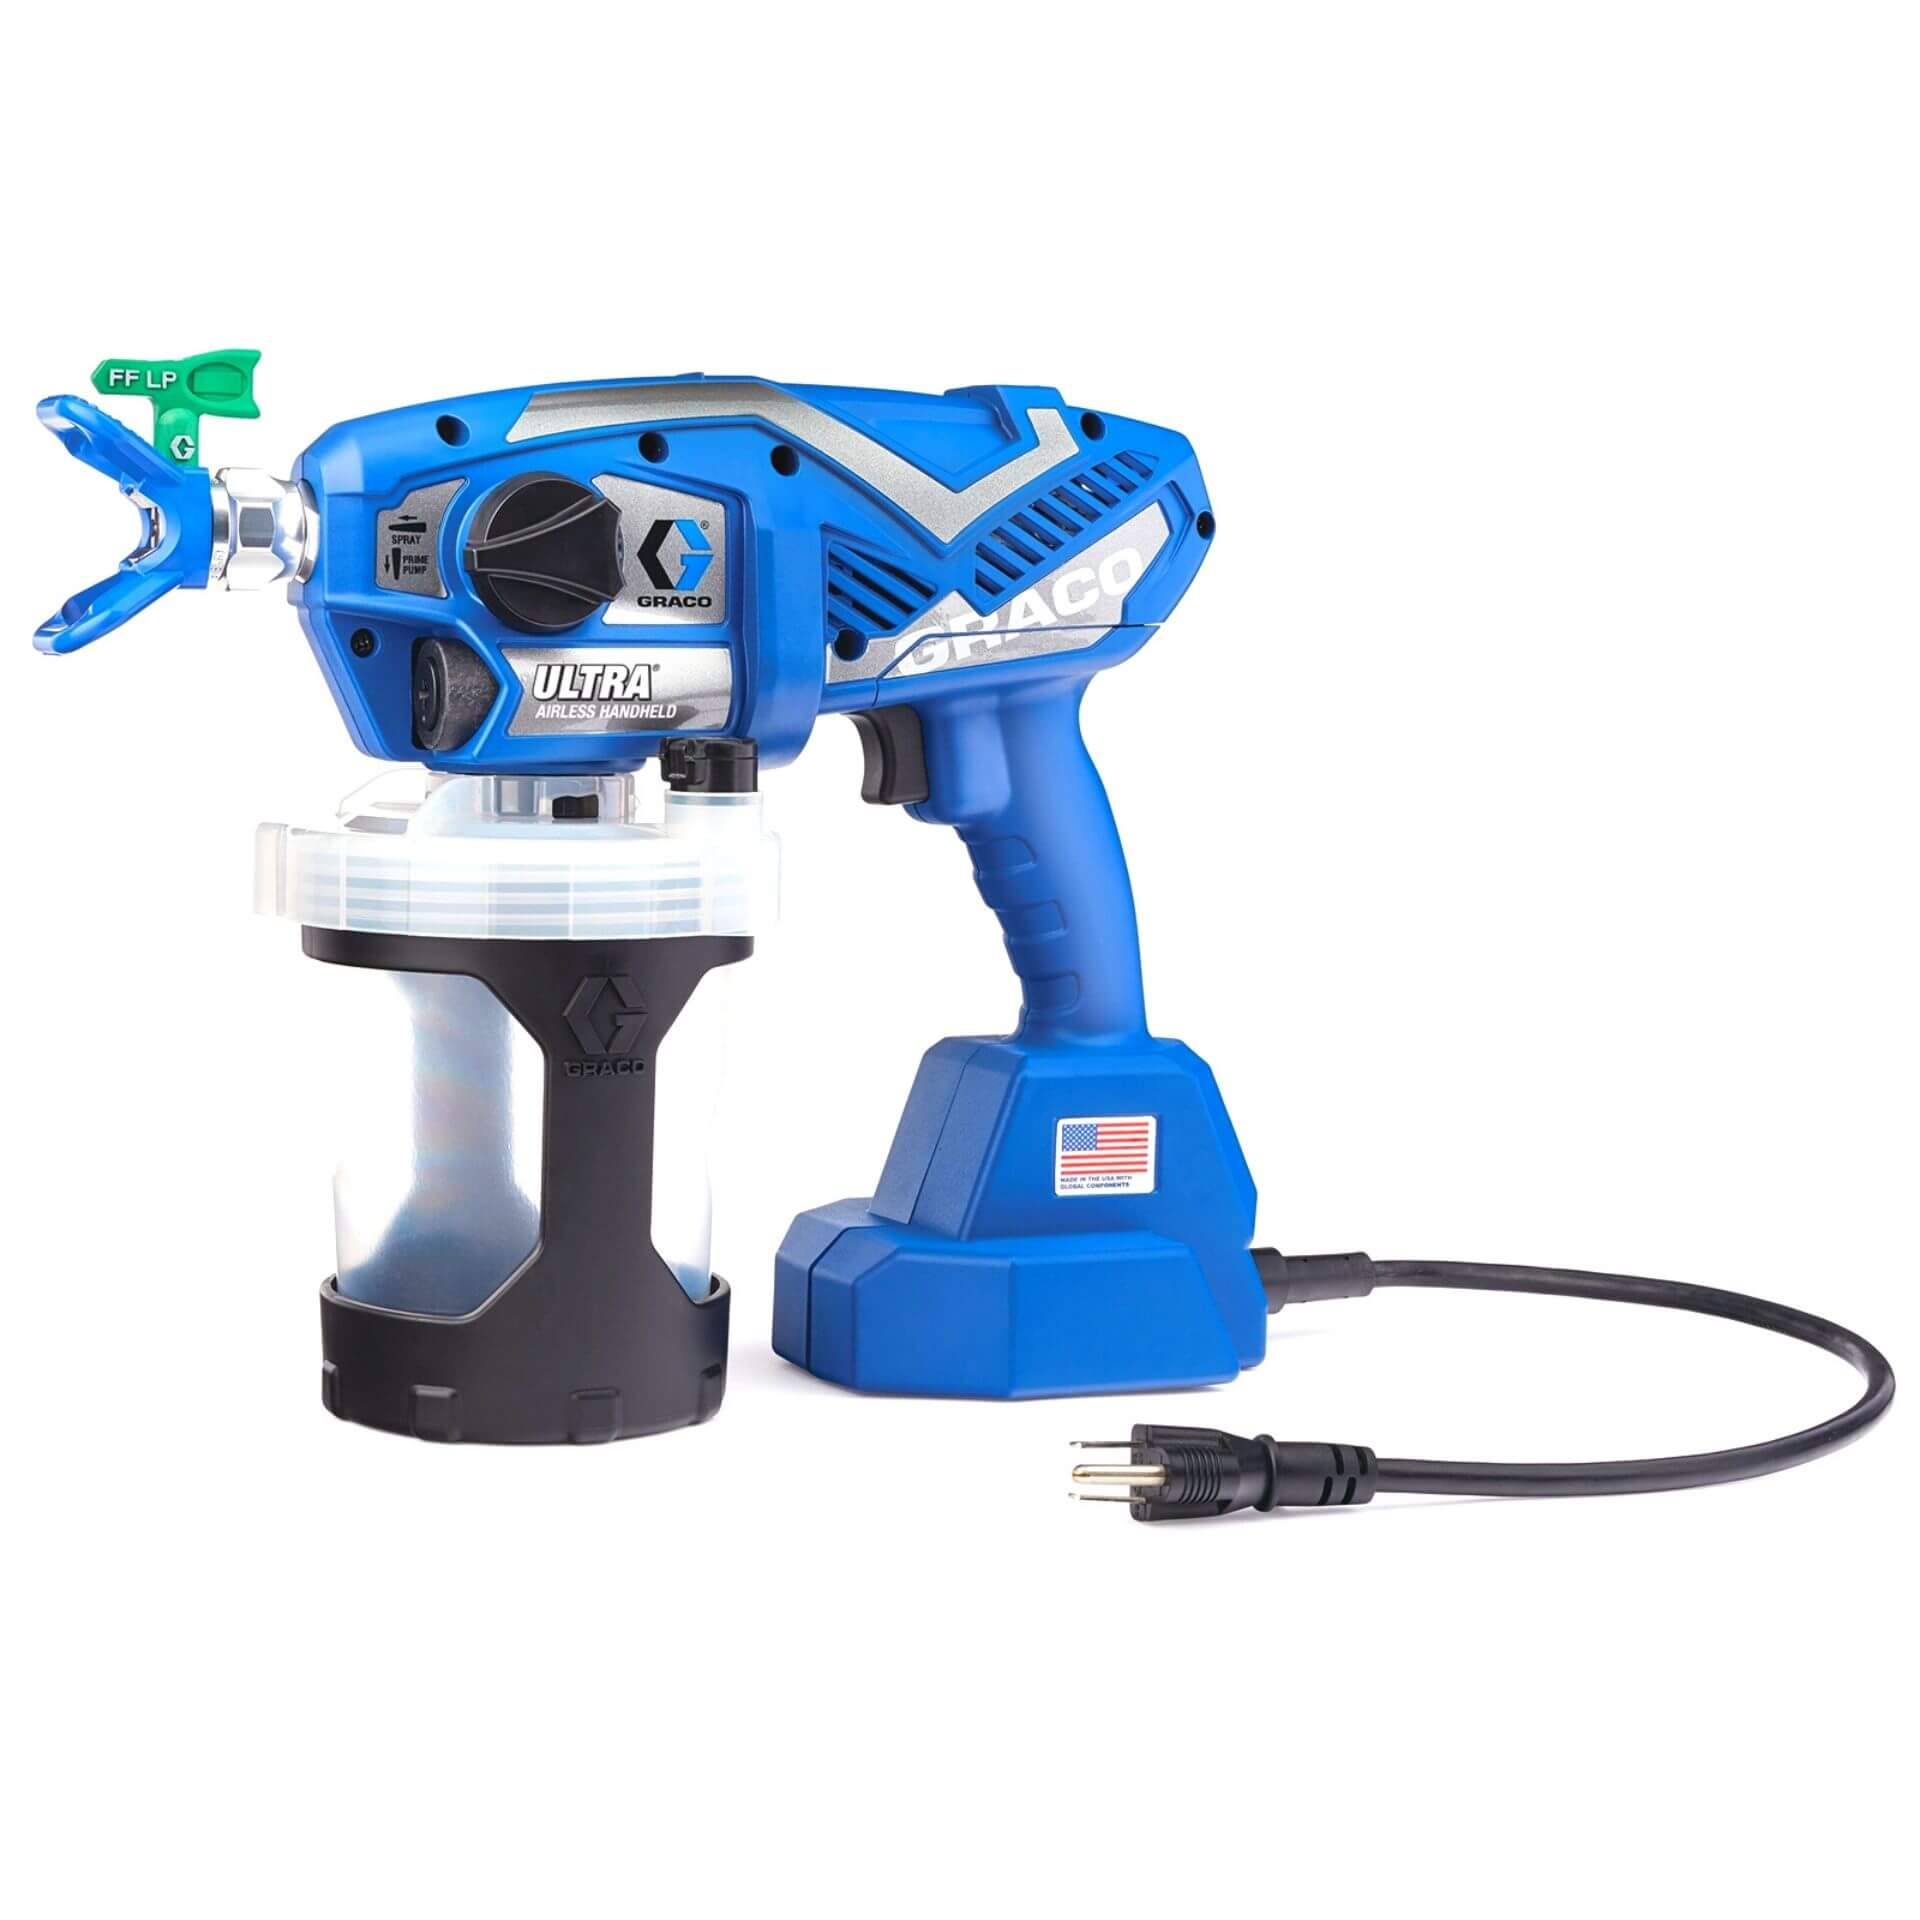 Best Handheld Paint Sprayer For Cabinets 2020 - The ...